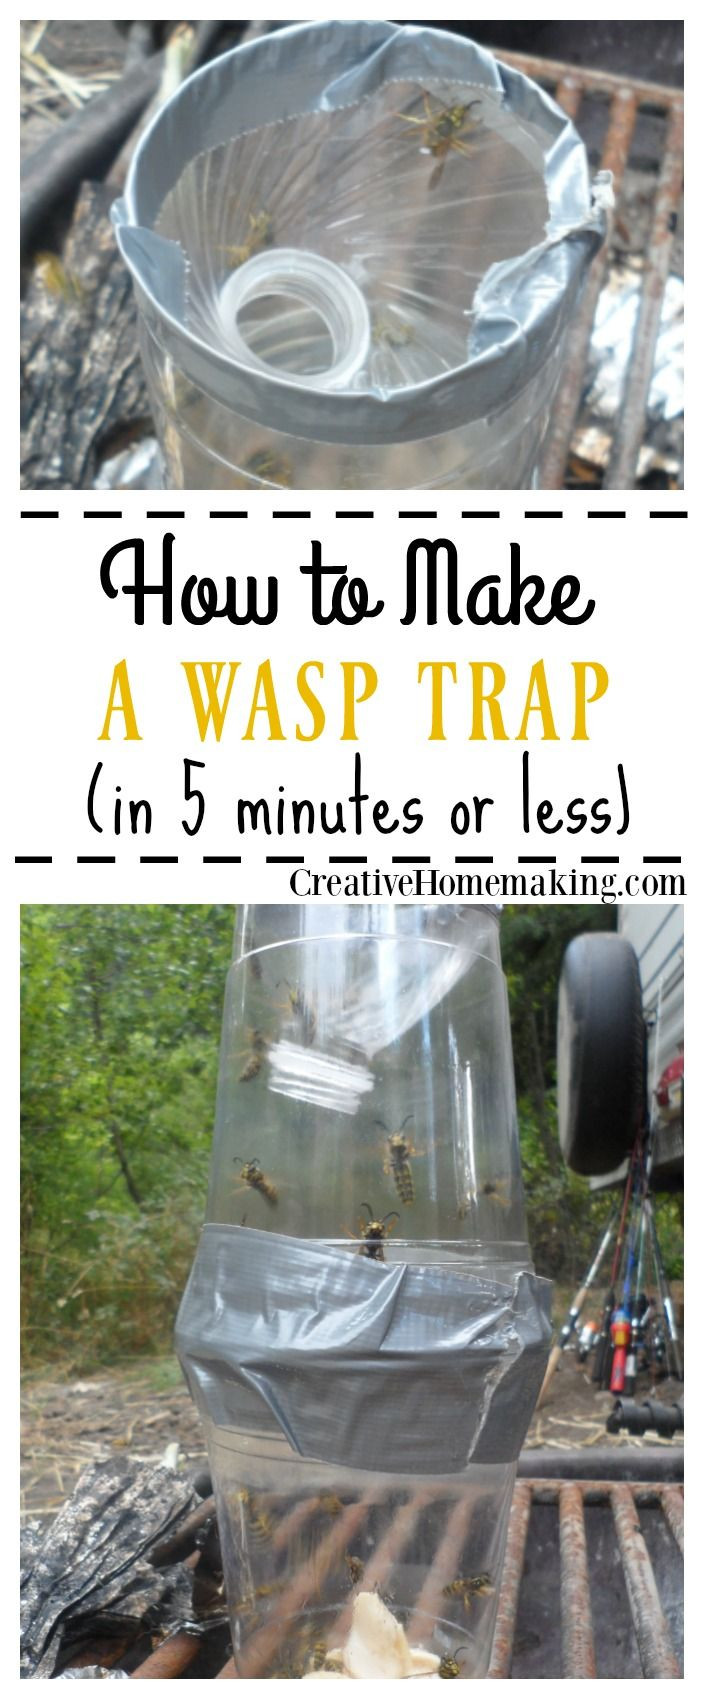 Best ideas about DIY Wasp Killer . Save or Pin 25 best ideas about Wasp Traps on Pinterest Now.